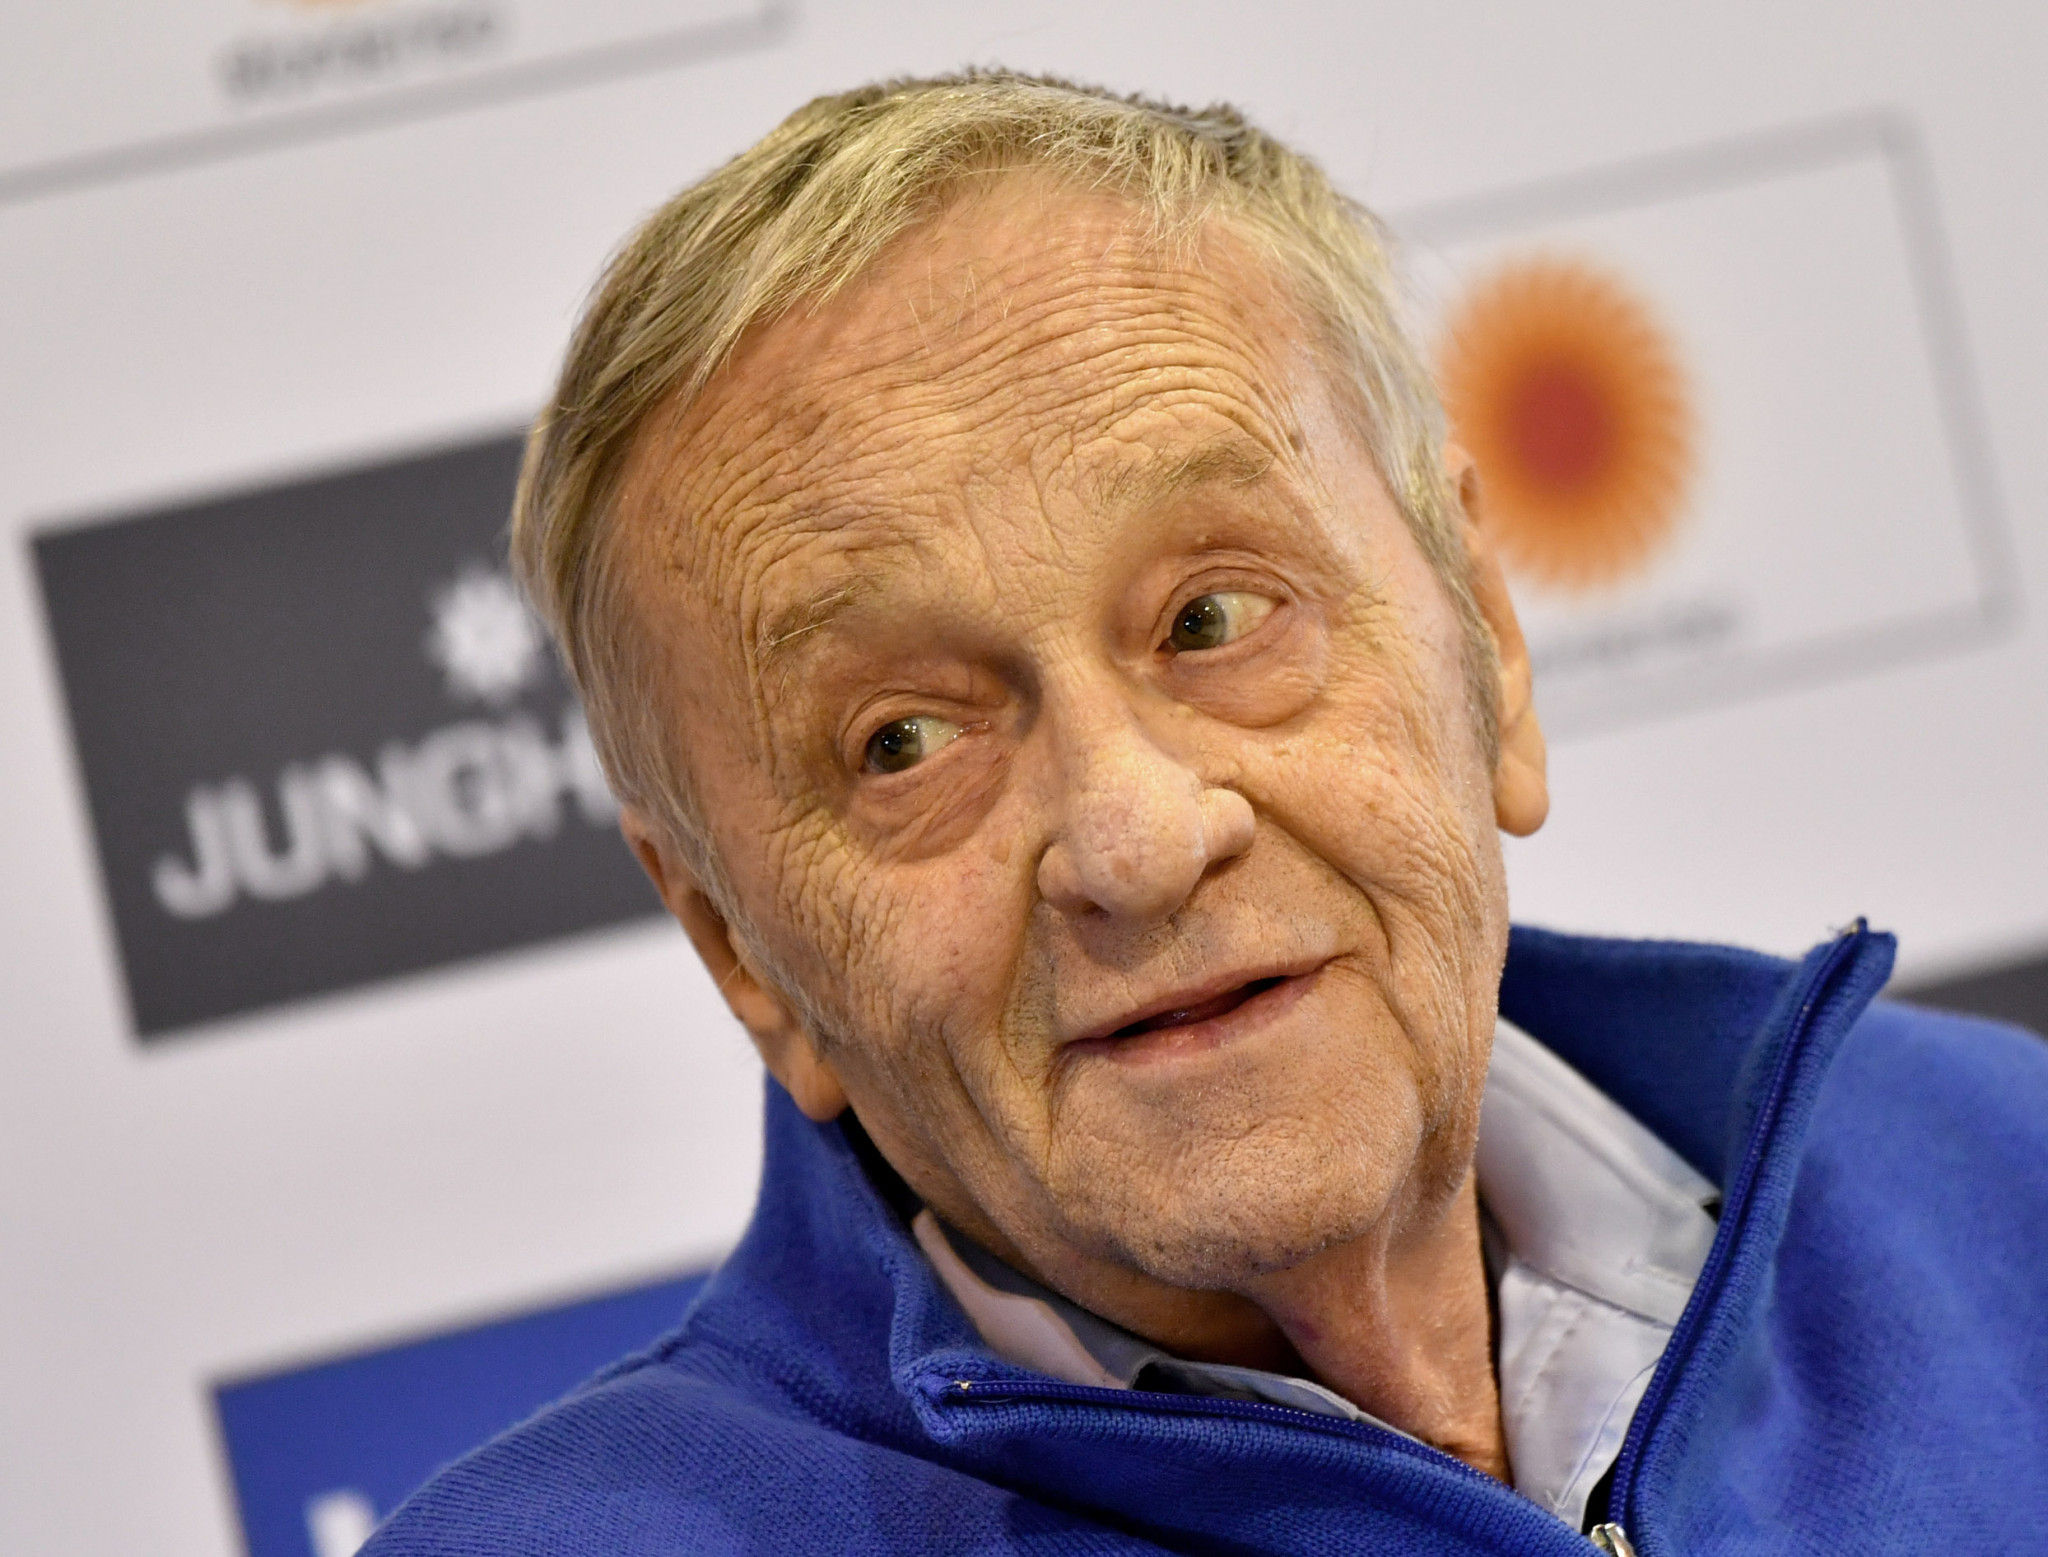 Gian-Franco Kasper's reign will go on after the International Ski Federation elections were delayed ©Getty Images